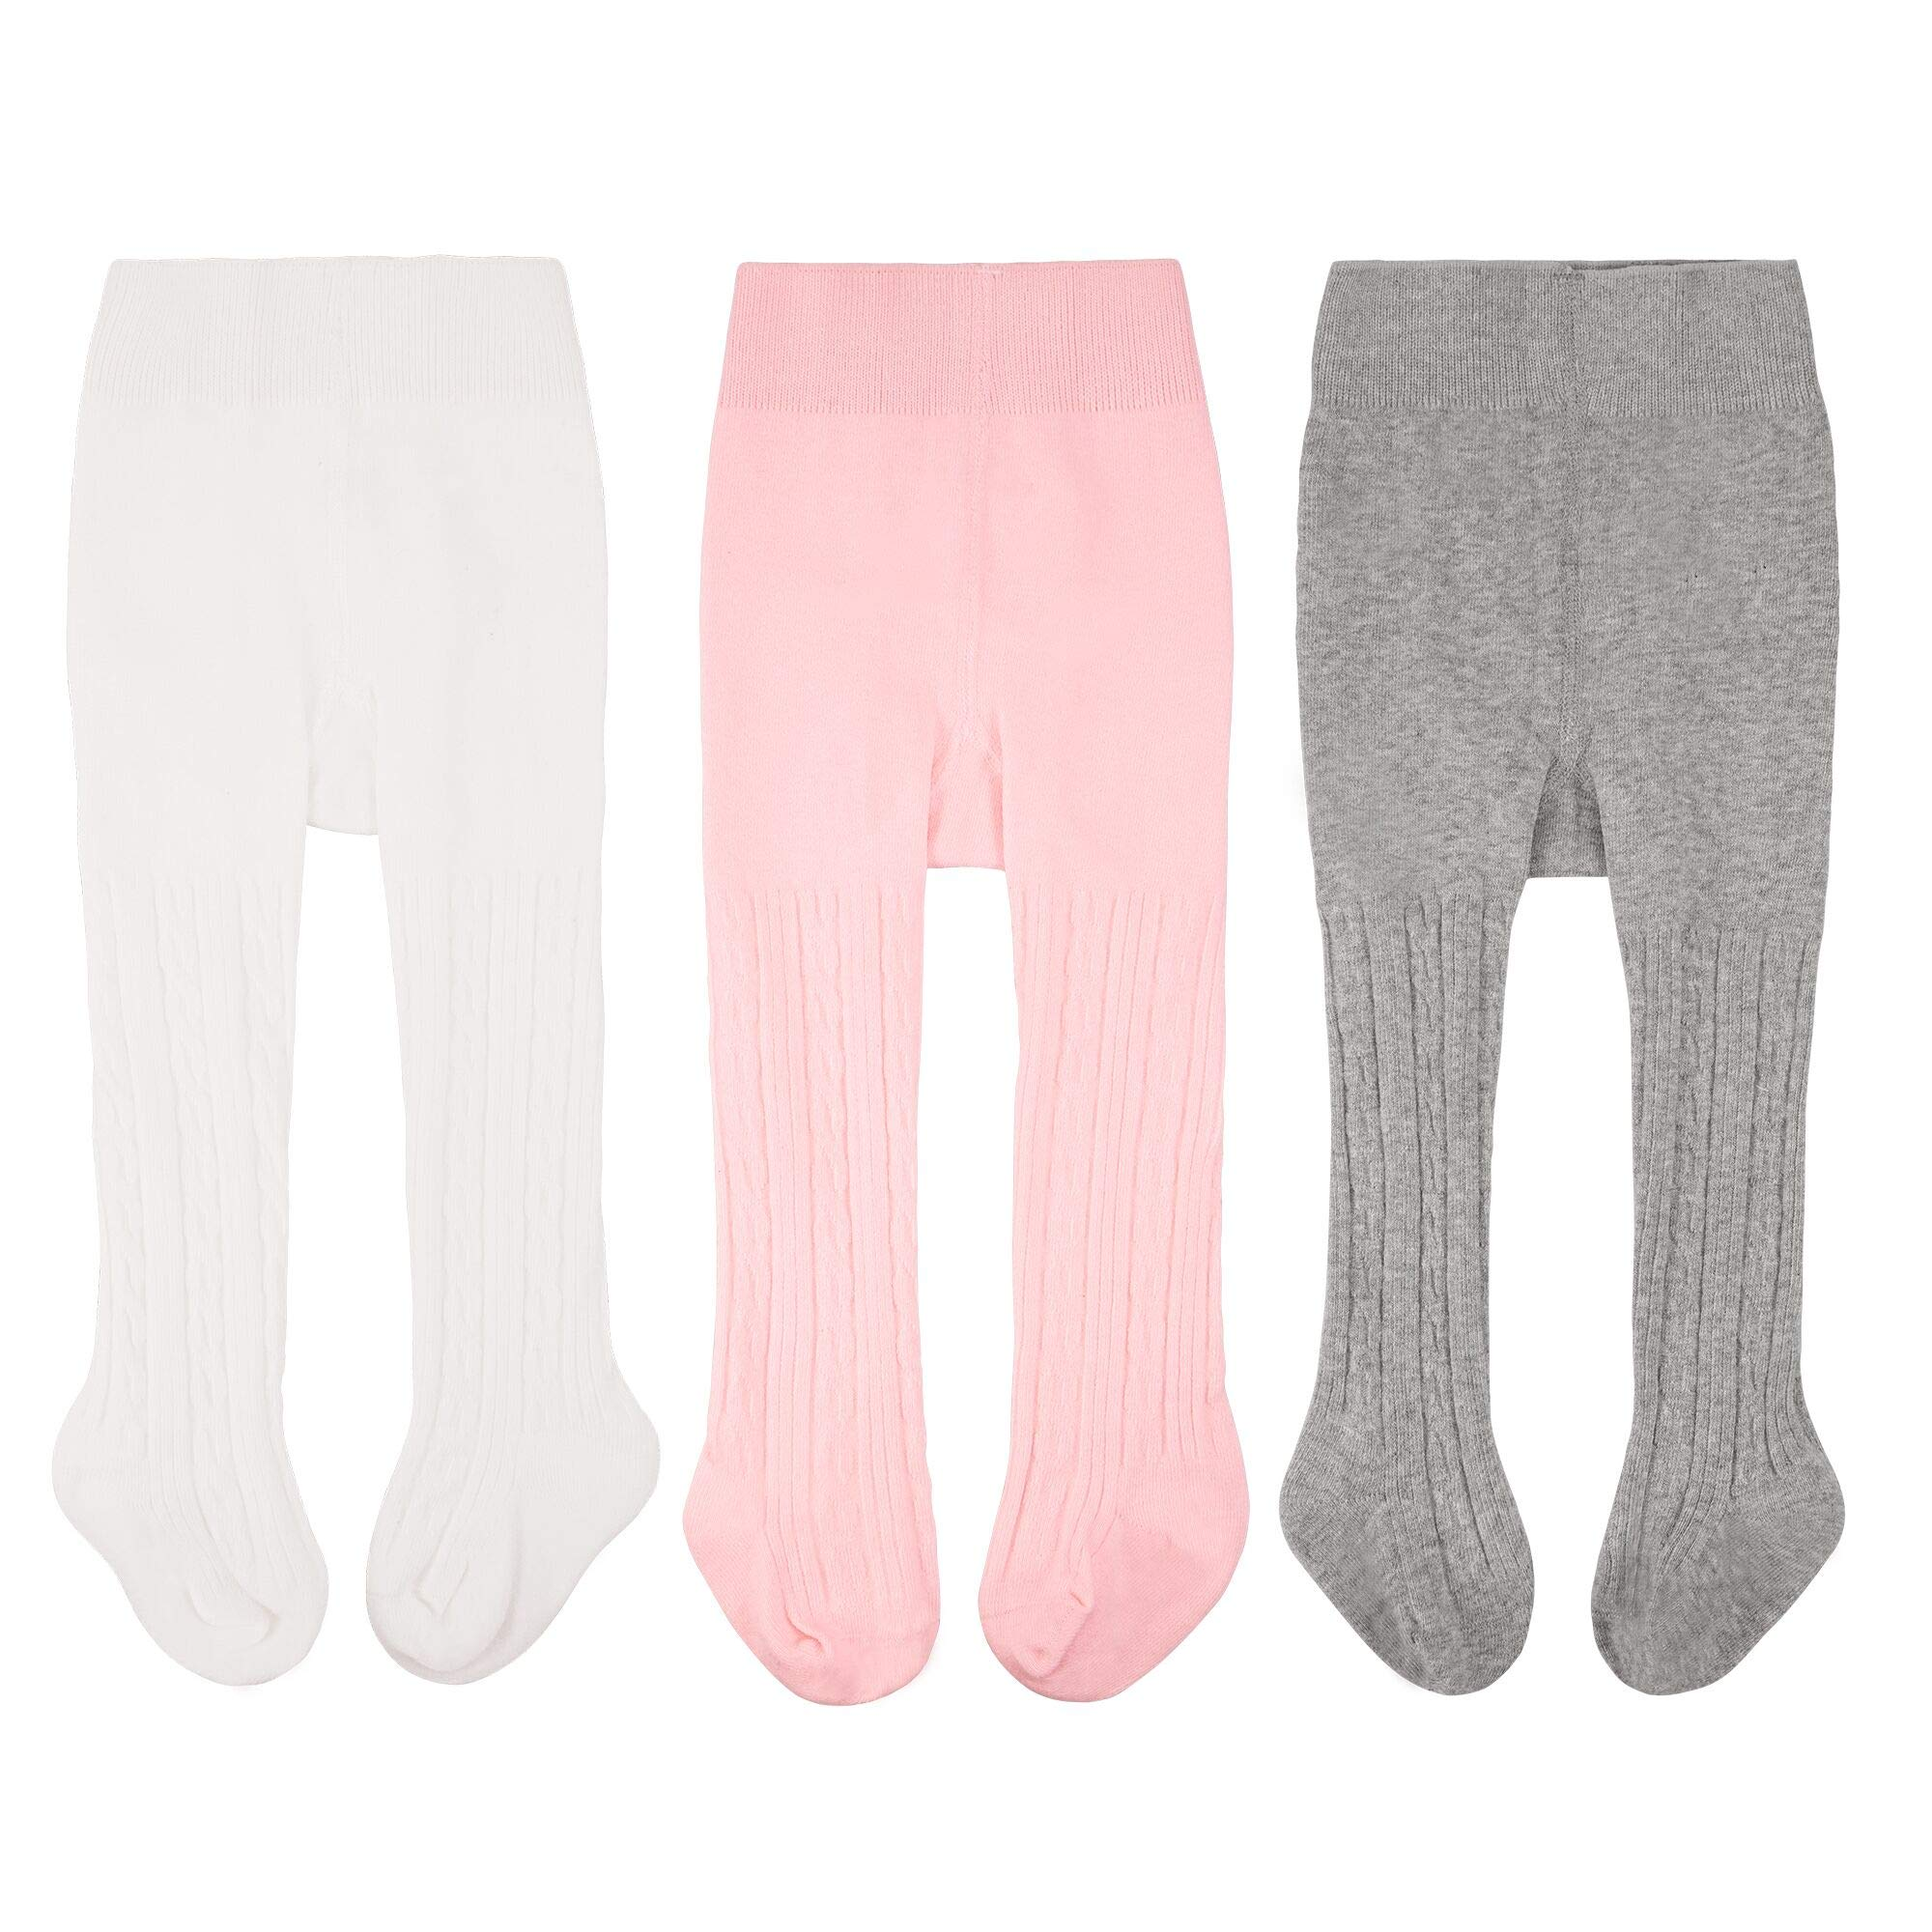 Infant Baby Tights Toddler Girls Leggings Stocking Kid Cable Knit Pantyhose Pants for 6 Pack 0-8t